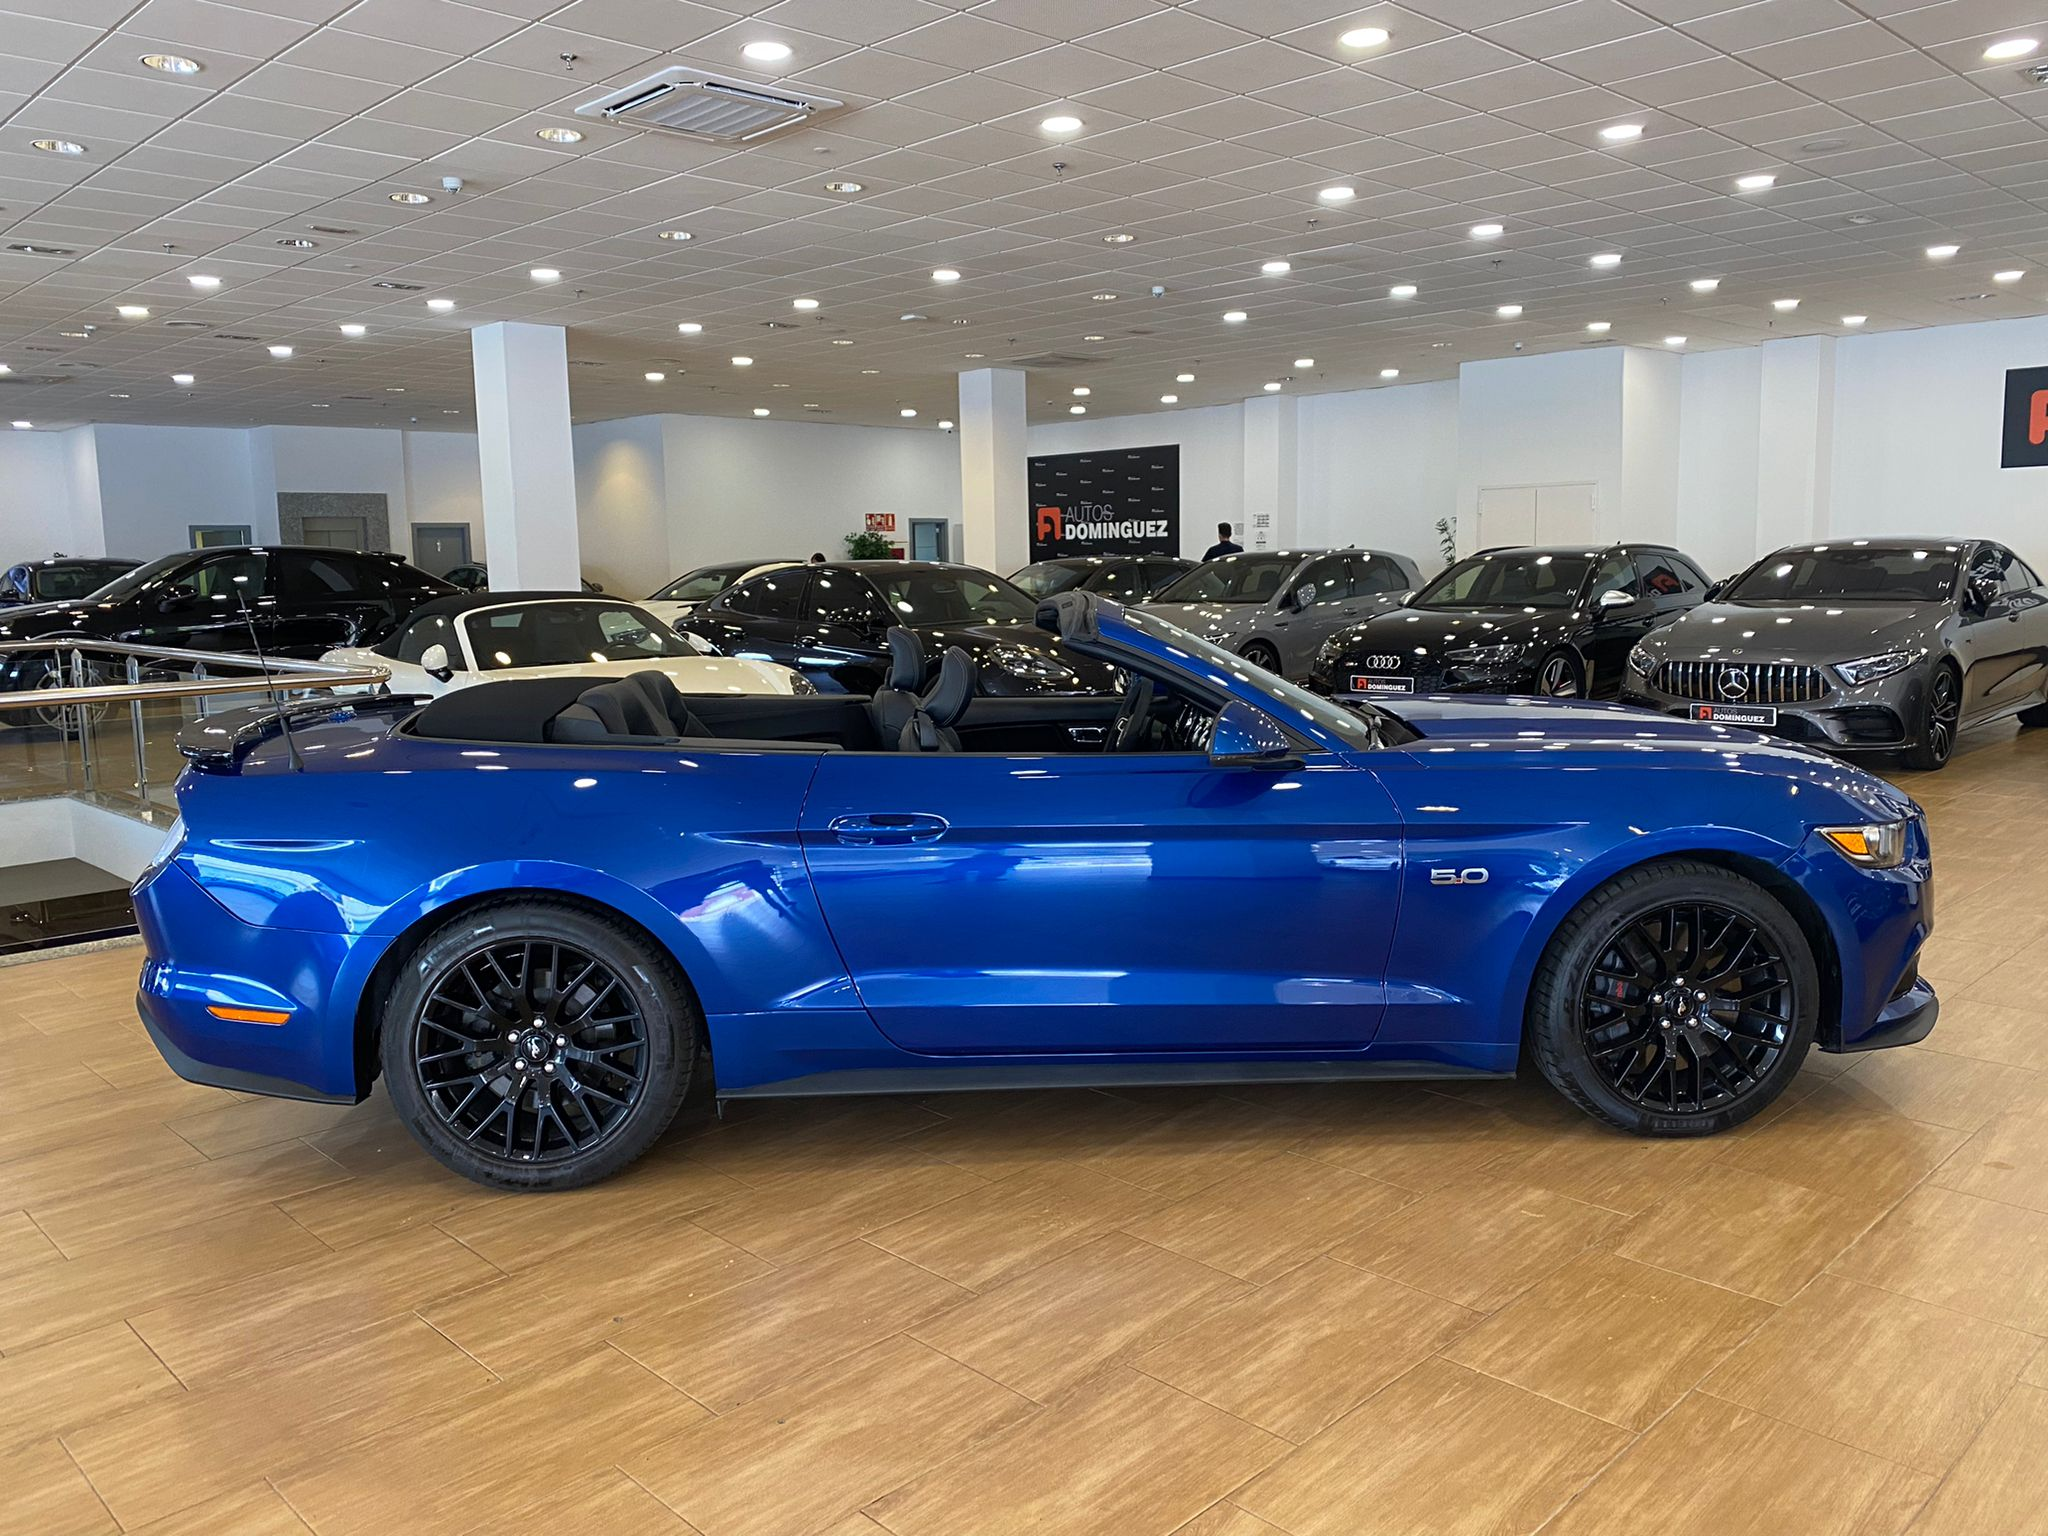 FORD Mustang 5.0 TiVCT V8 307kW Mustang GT Conv. 2p. 5